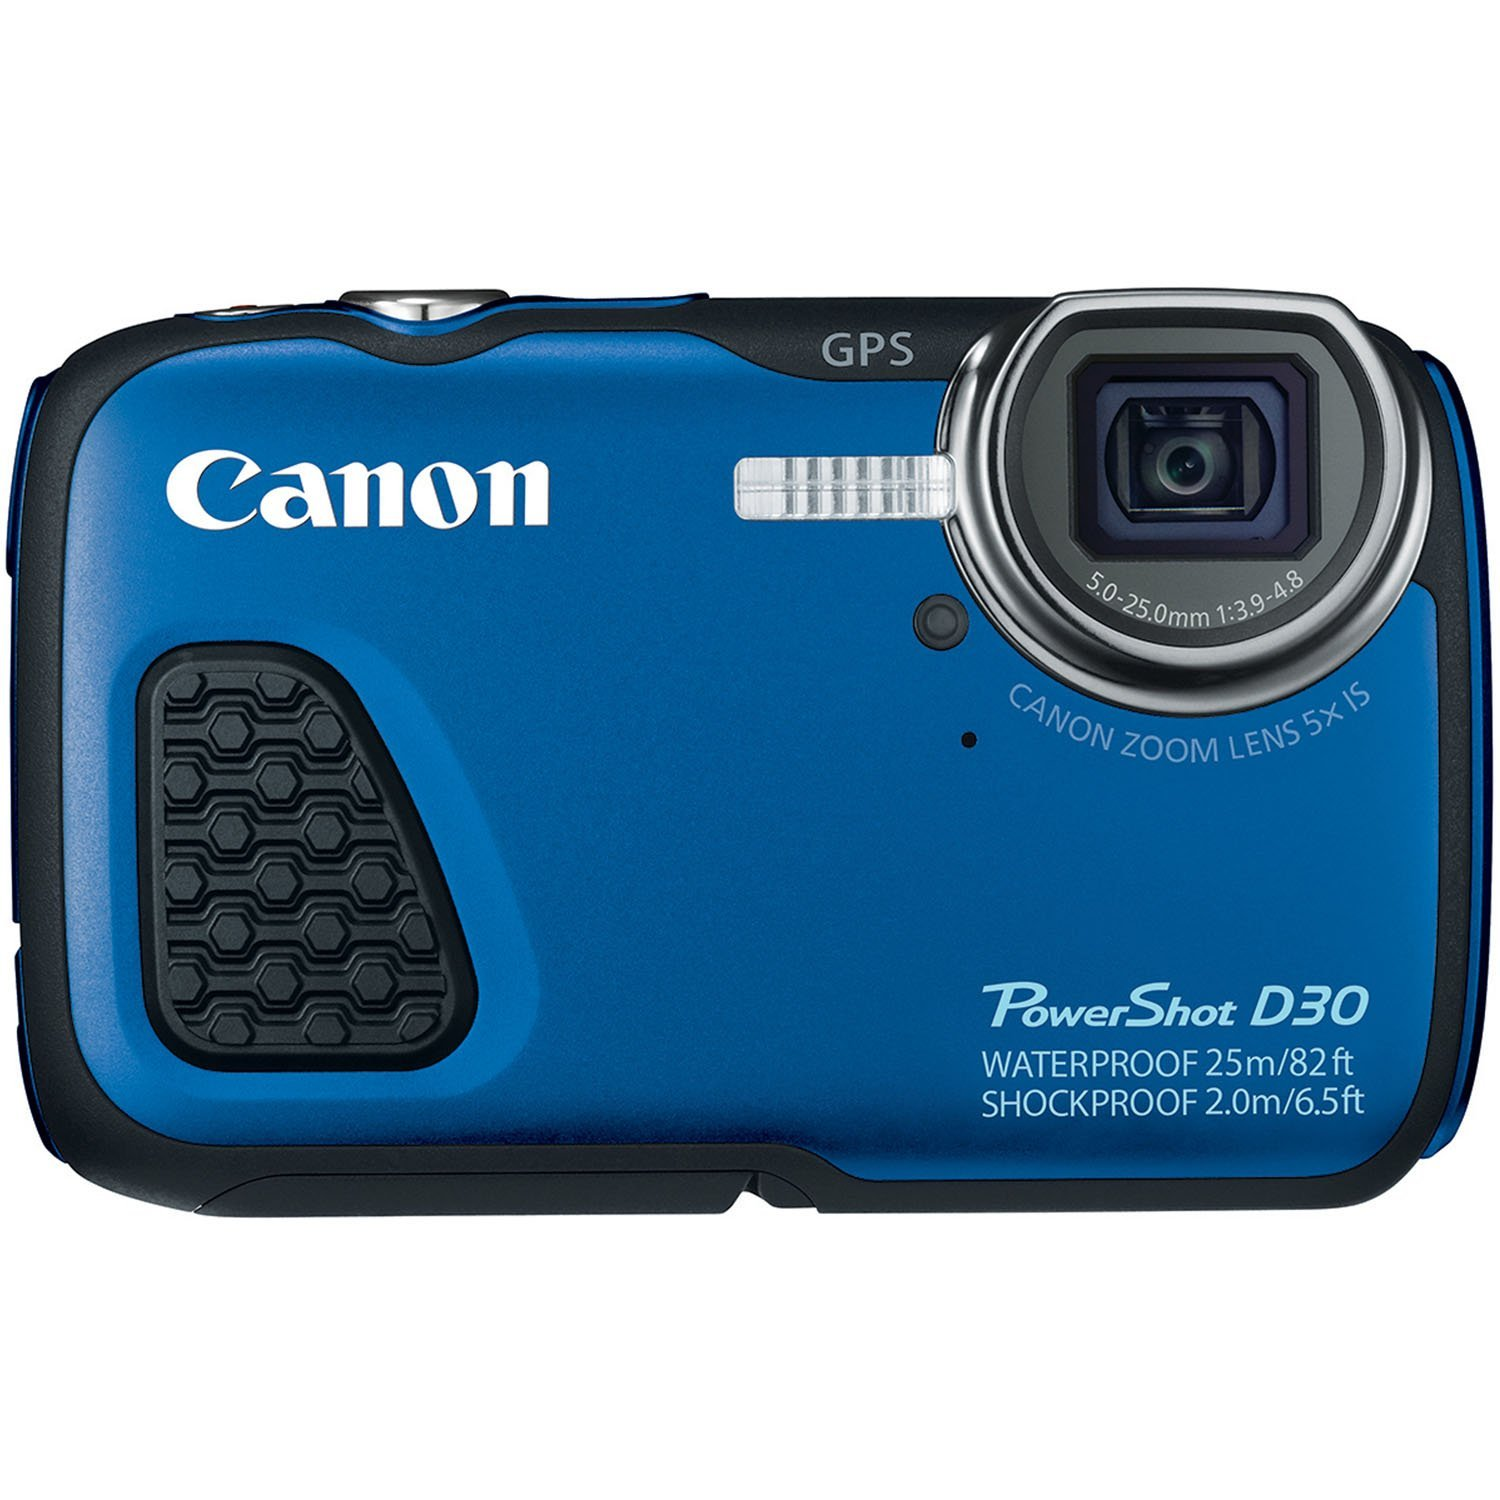 Canon PowerShot D30 Waterproof Digital Camera